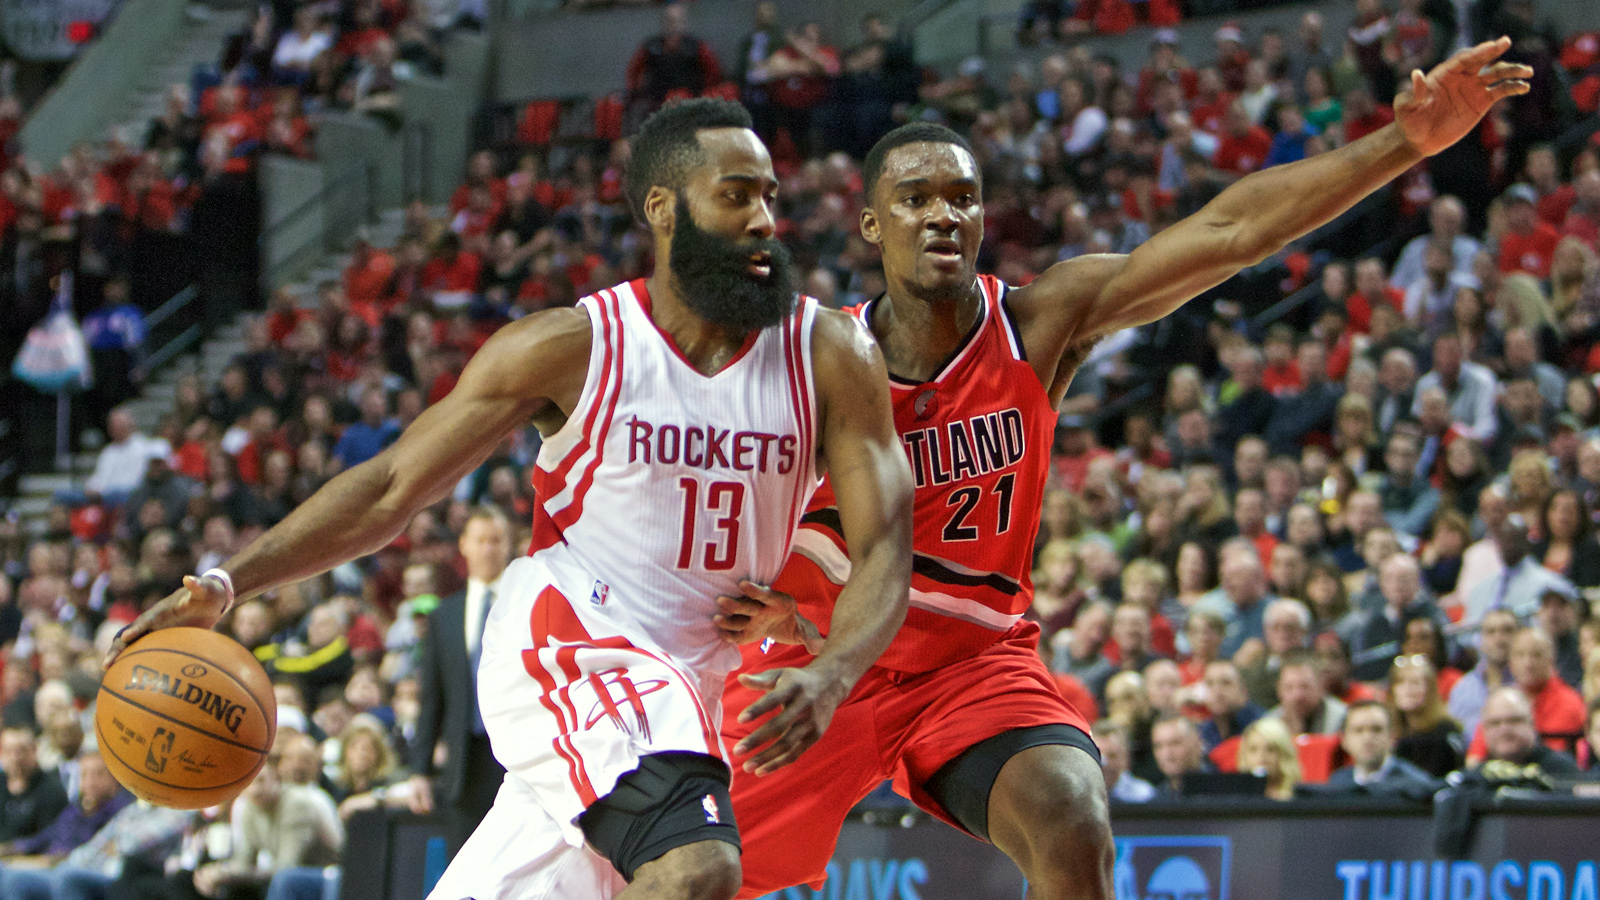 James Harden scores 46, Rockets rally from 21 down to beat Blazers